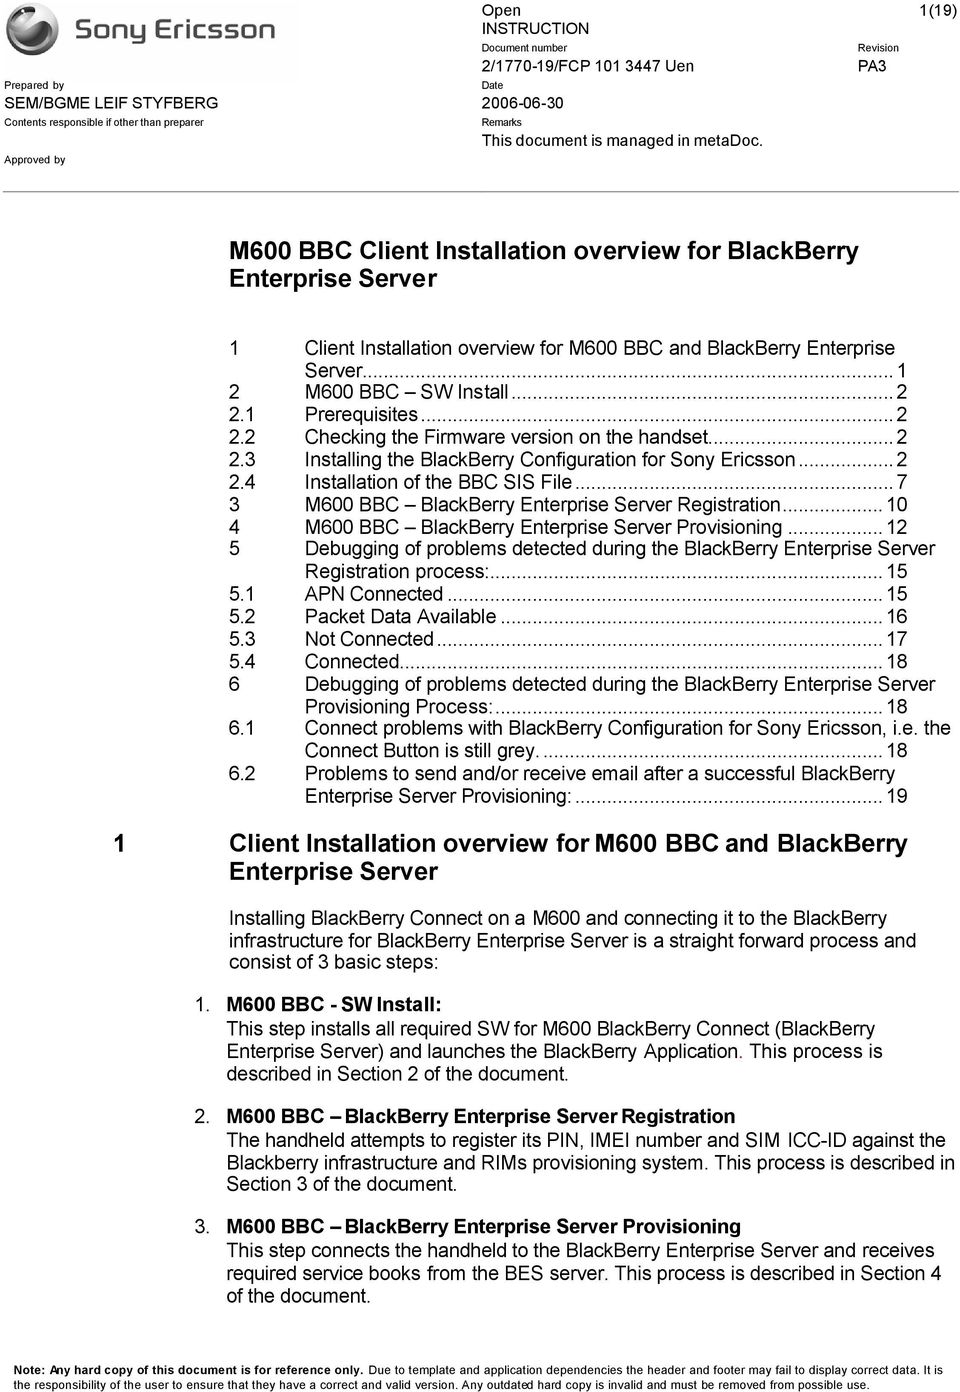 1 Prerequisites...2 2.2 Checking the Firmware version on the handset...2 2.3 Installing the BlackBerry Configuration for Sony Ericsson...2 2.4 Installation of the BBC SIS File.